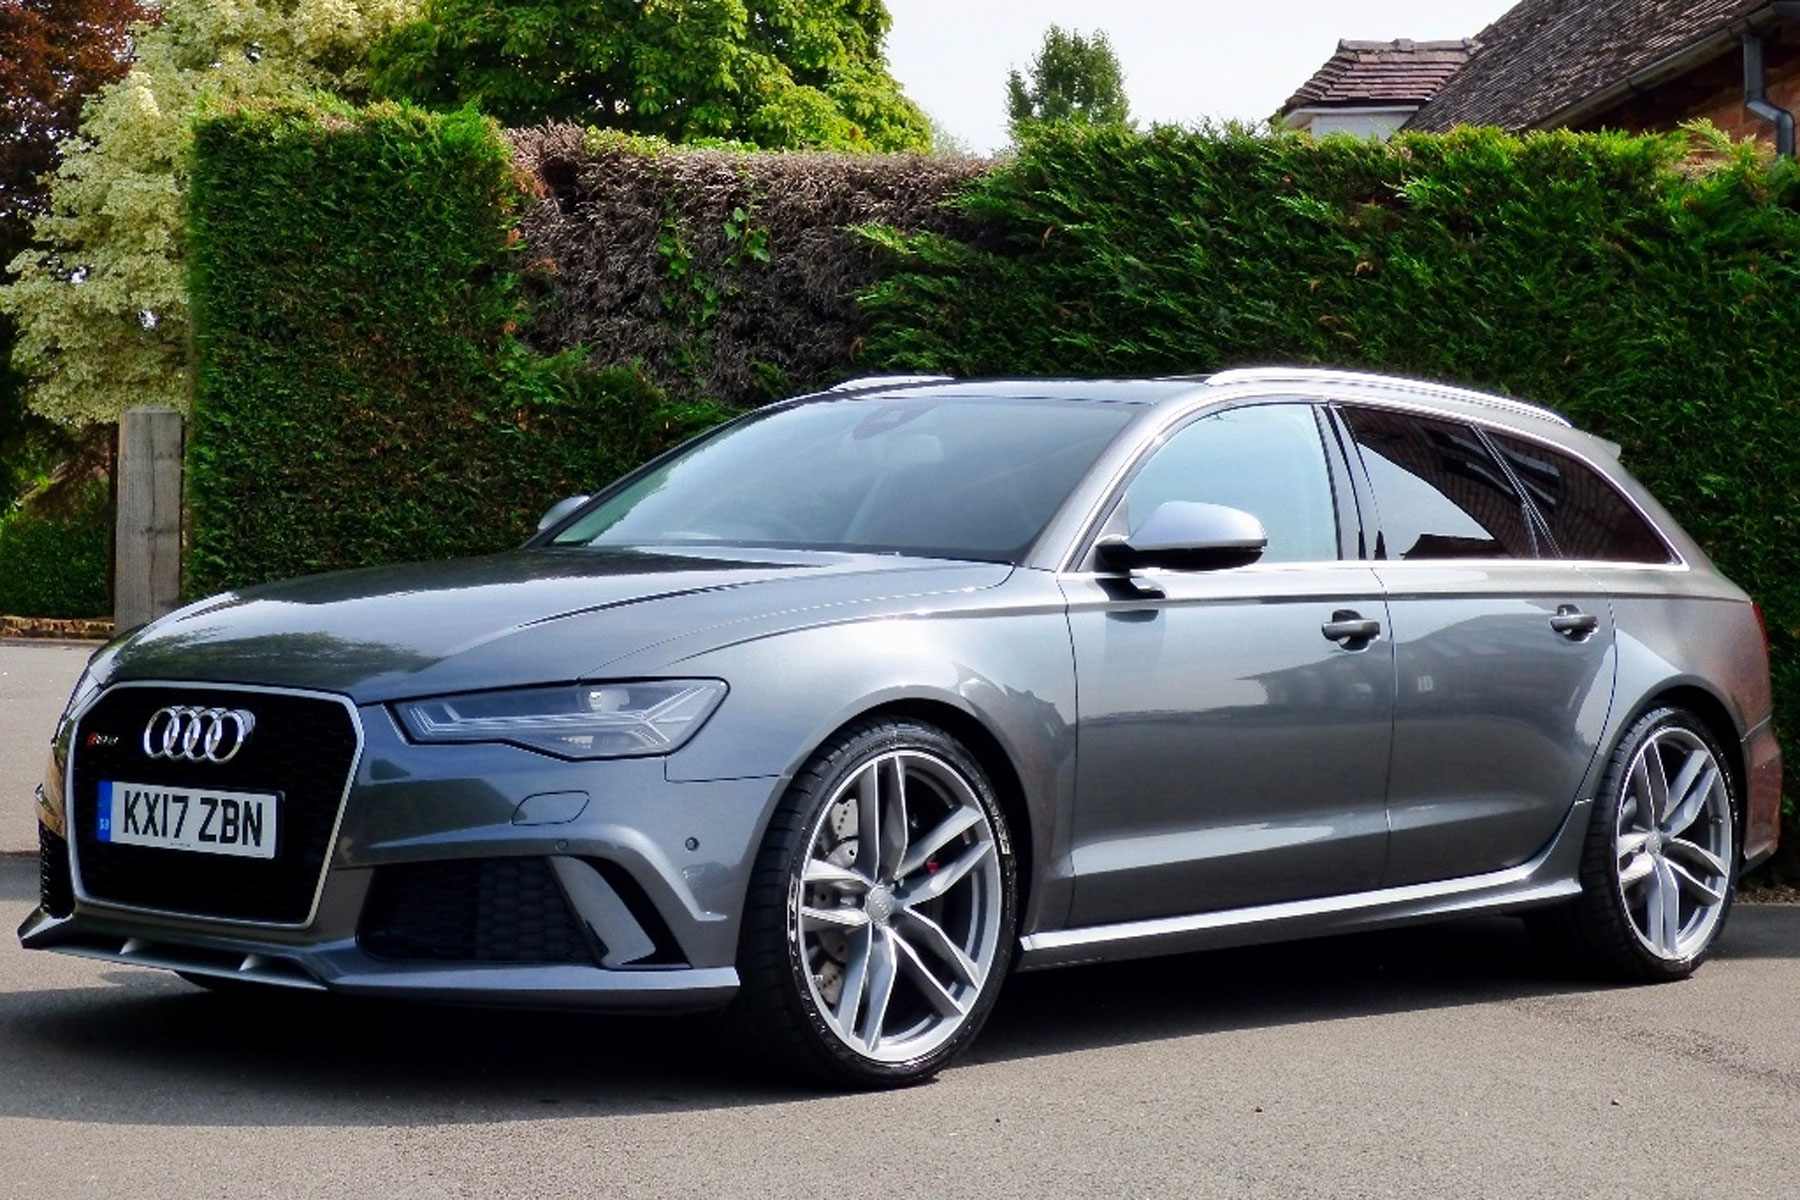 Prince Harry S Audi Rs6 Avant For Sale On Auto Trader